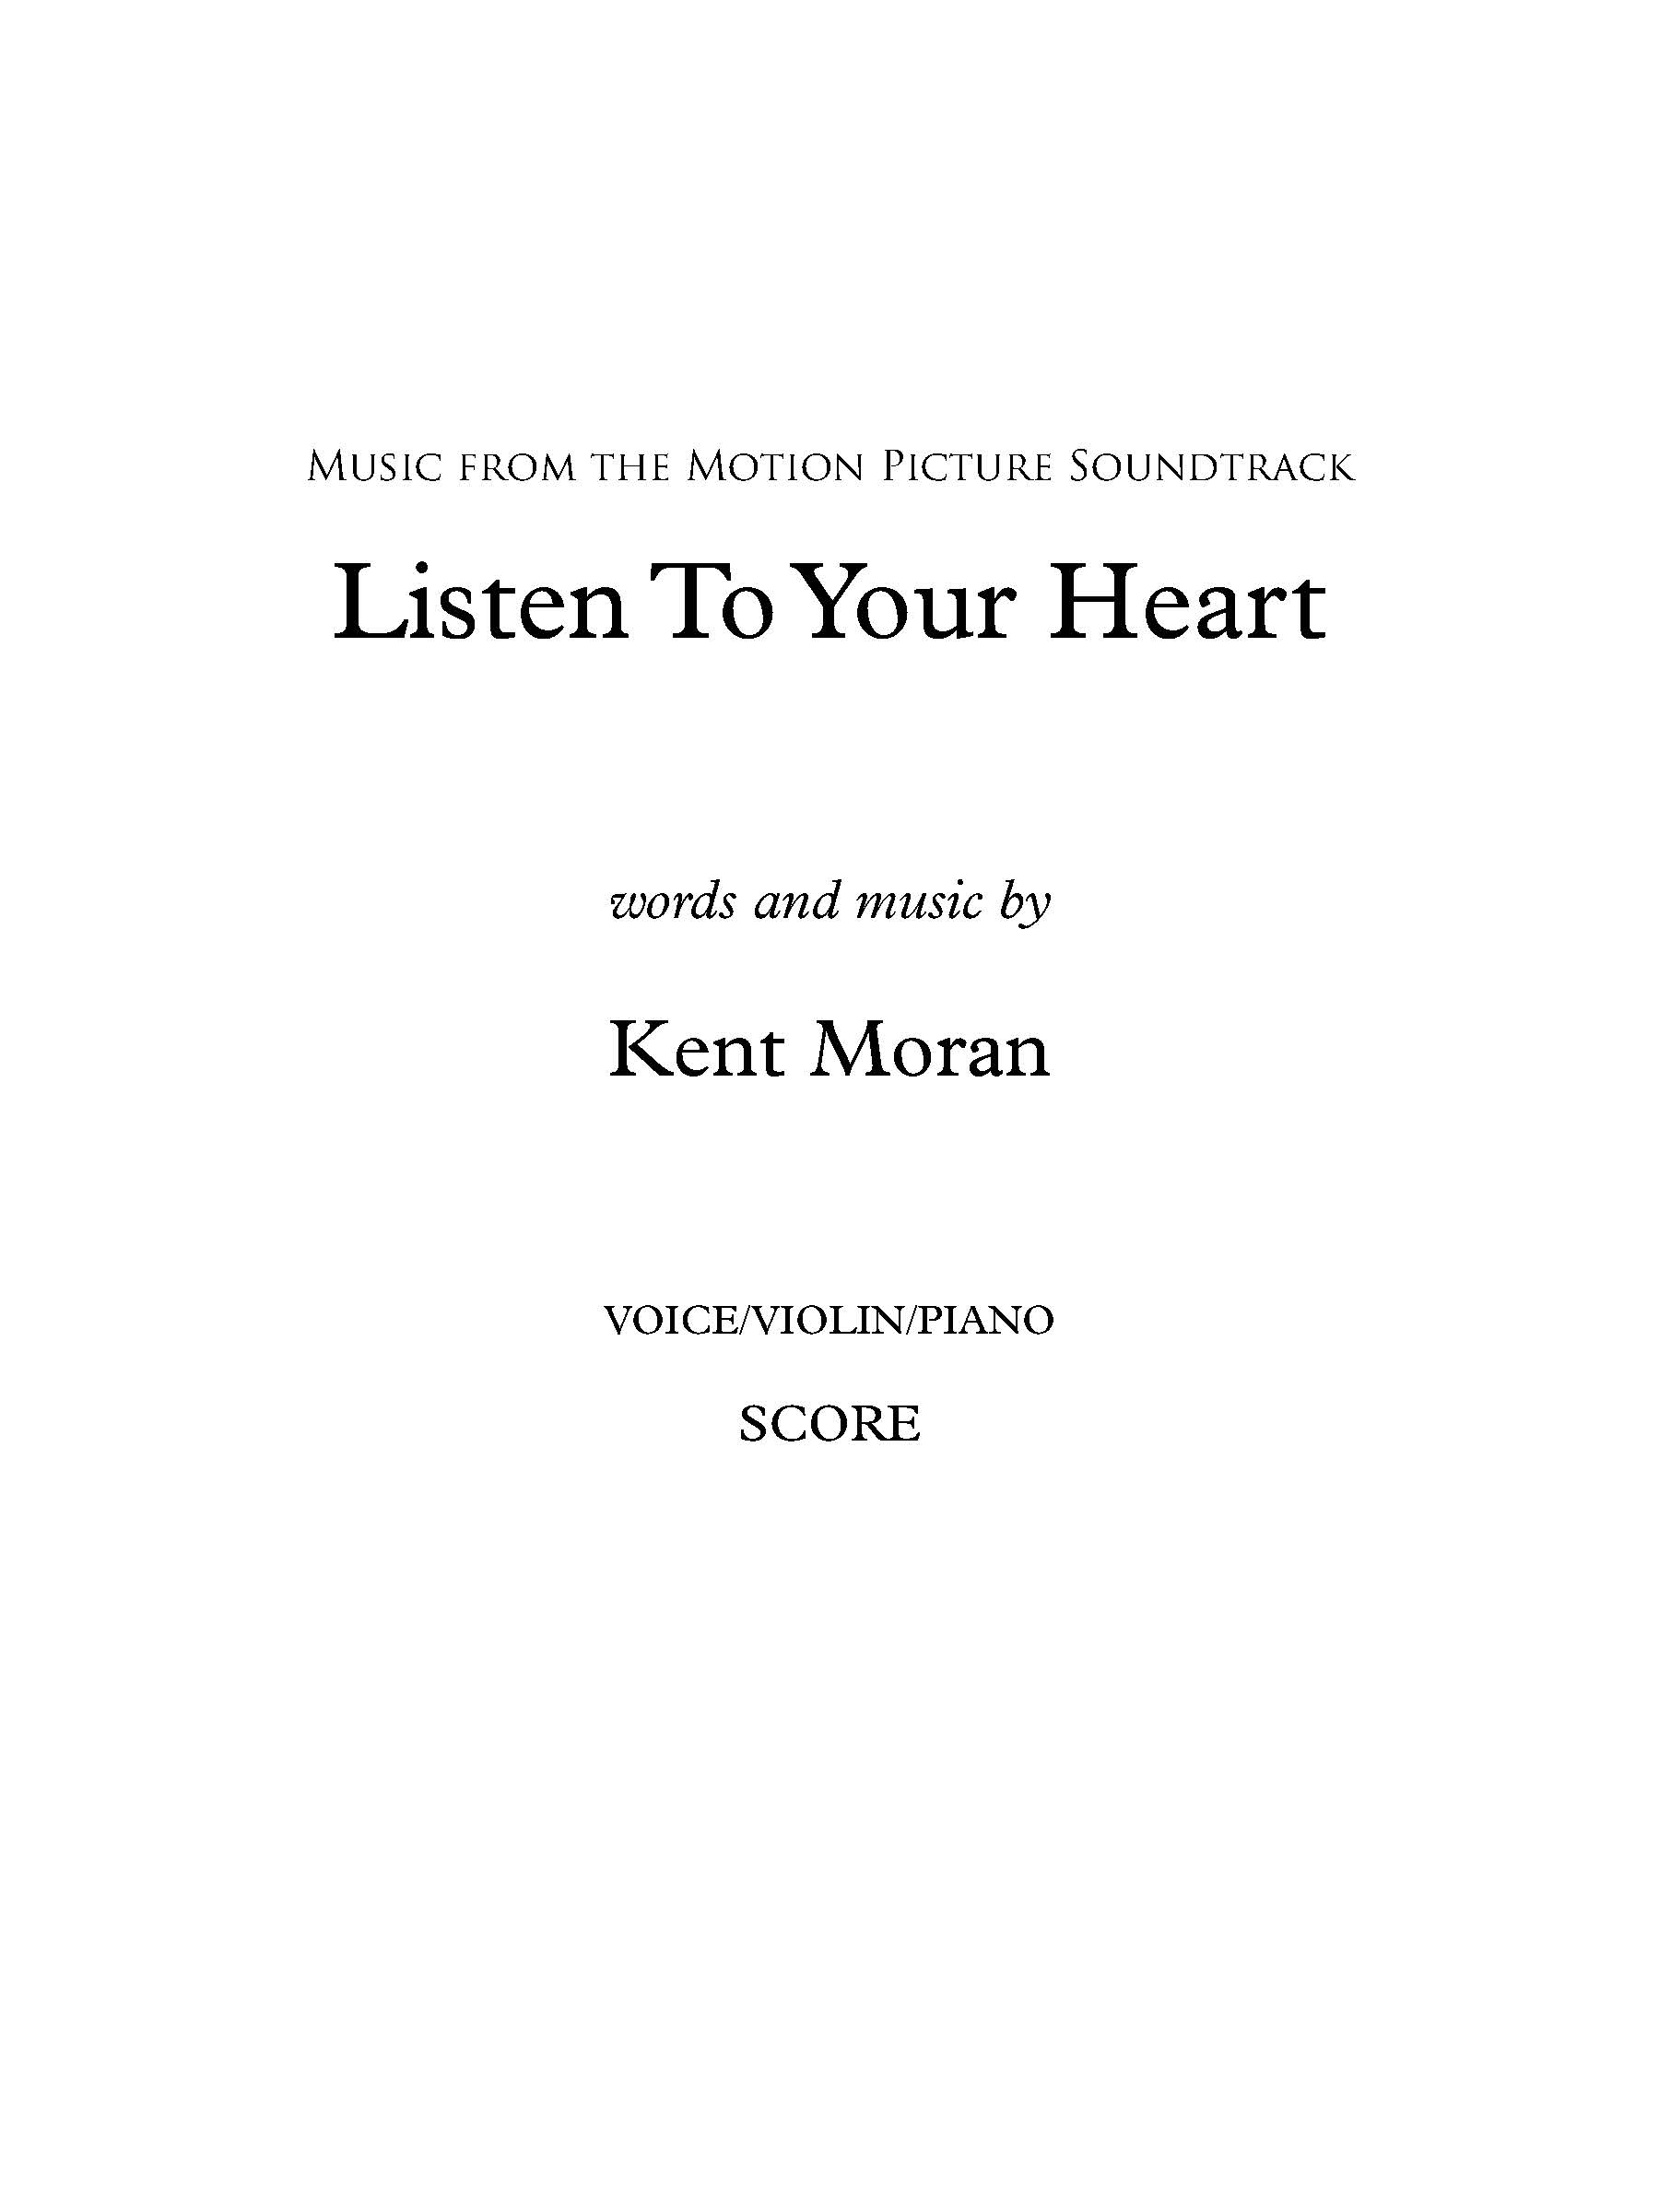 Listen to Your Heart Movie Sheet Music Preview_Page_1.jpg